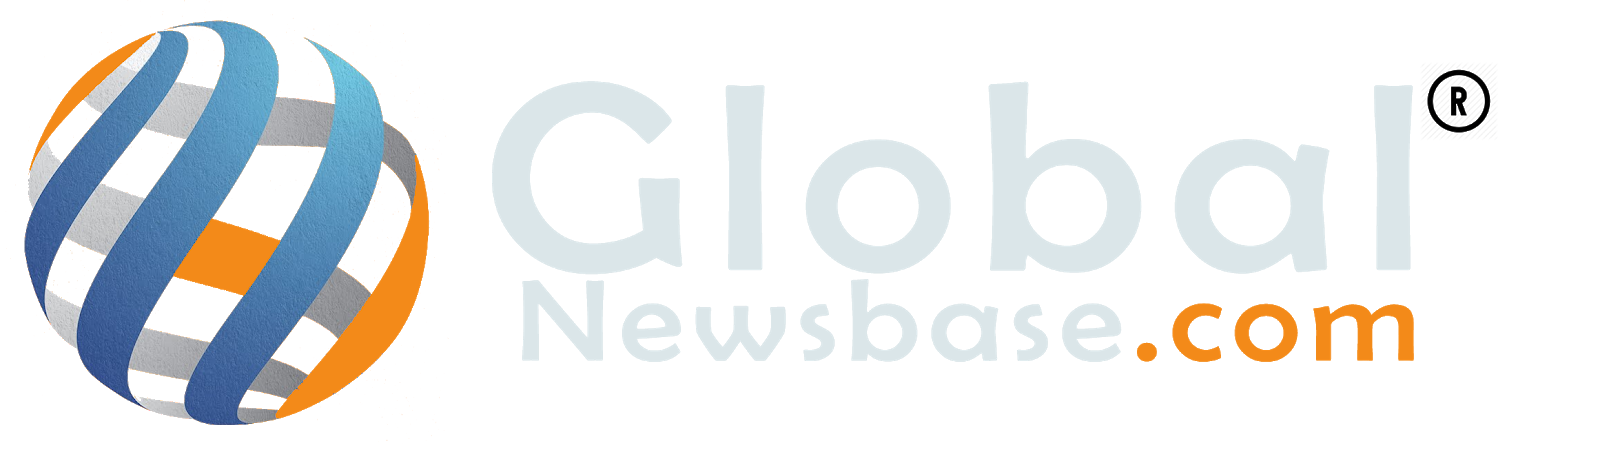 Global Newsbase | Reaching Every Point Simultaneuolsy